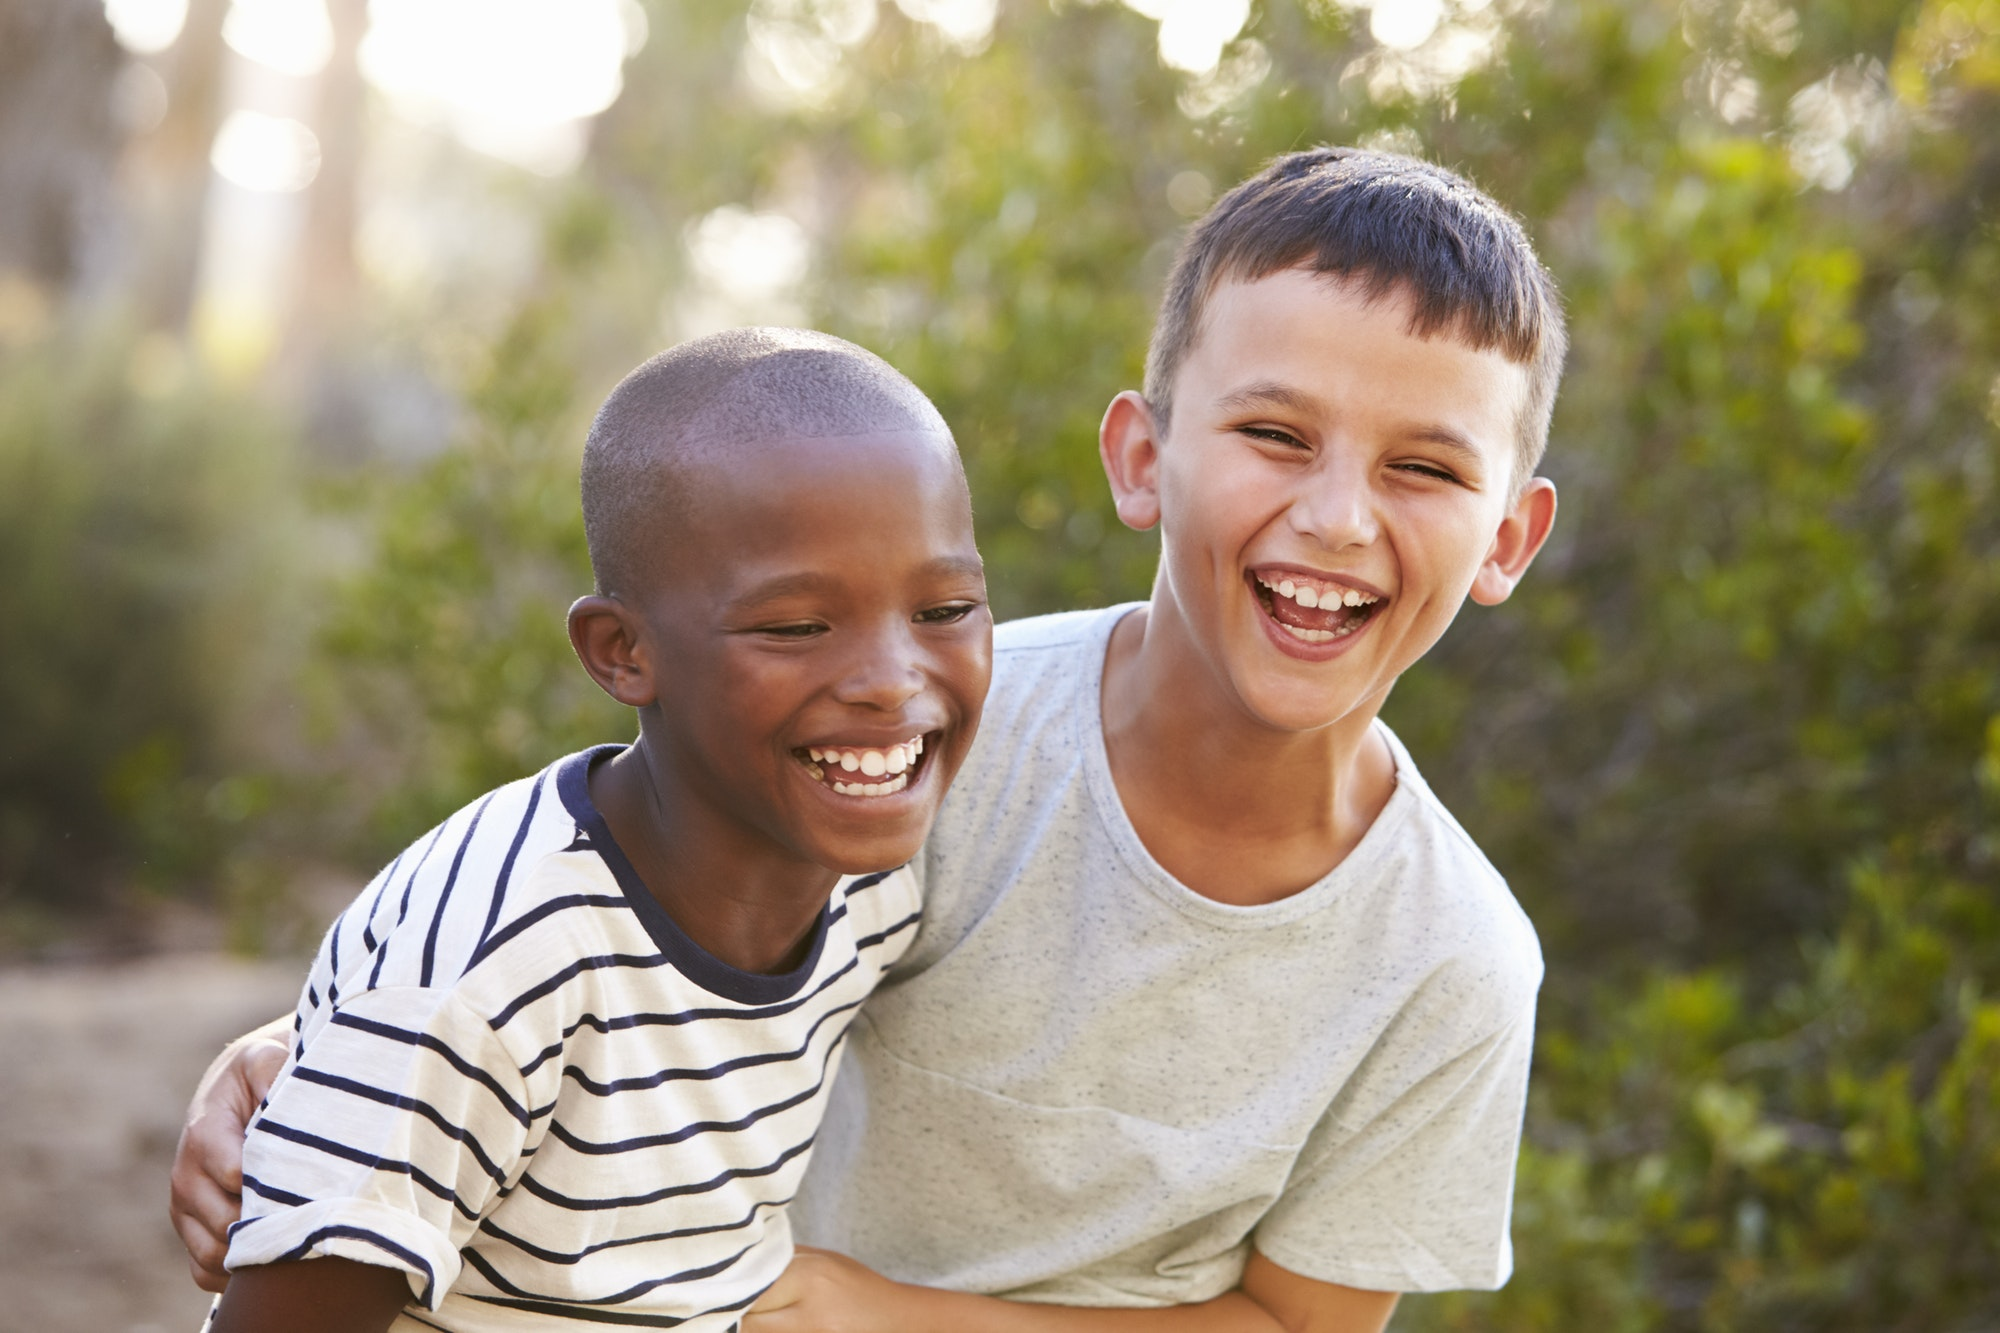 Portrait of two boys embracing and laughing hard outdoors